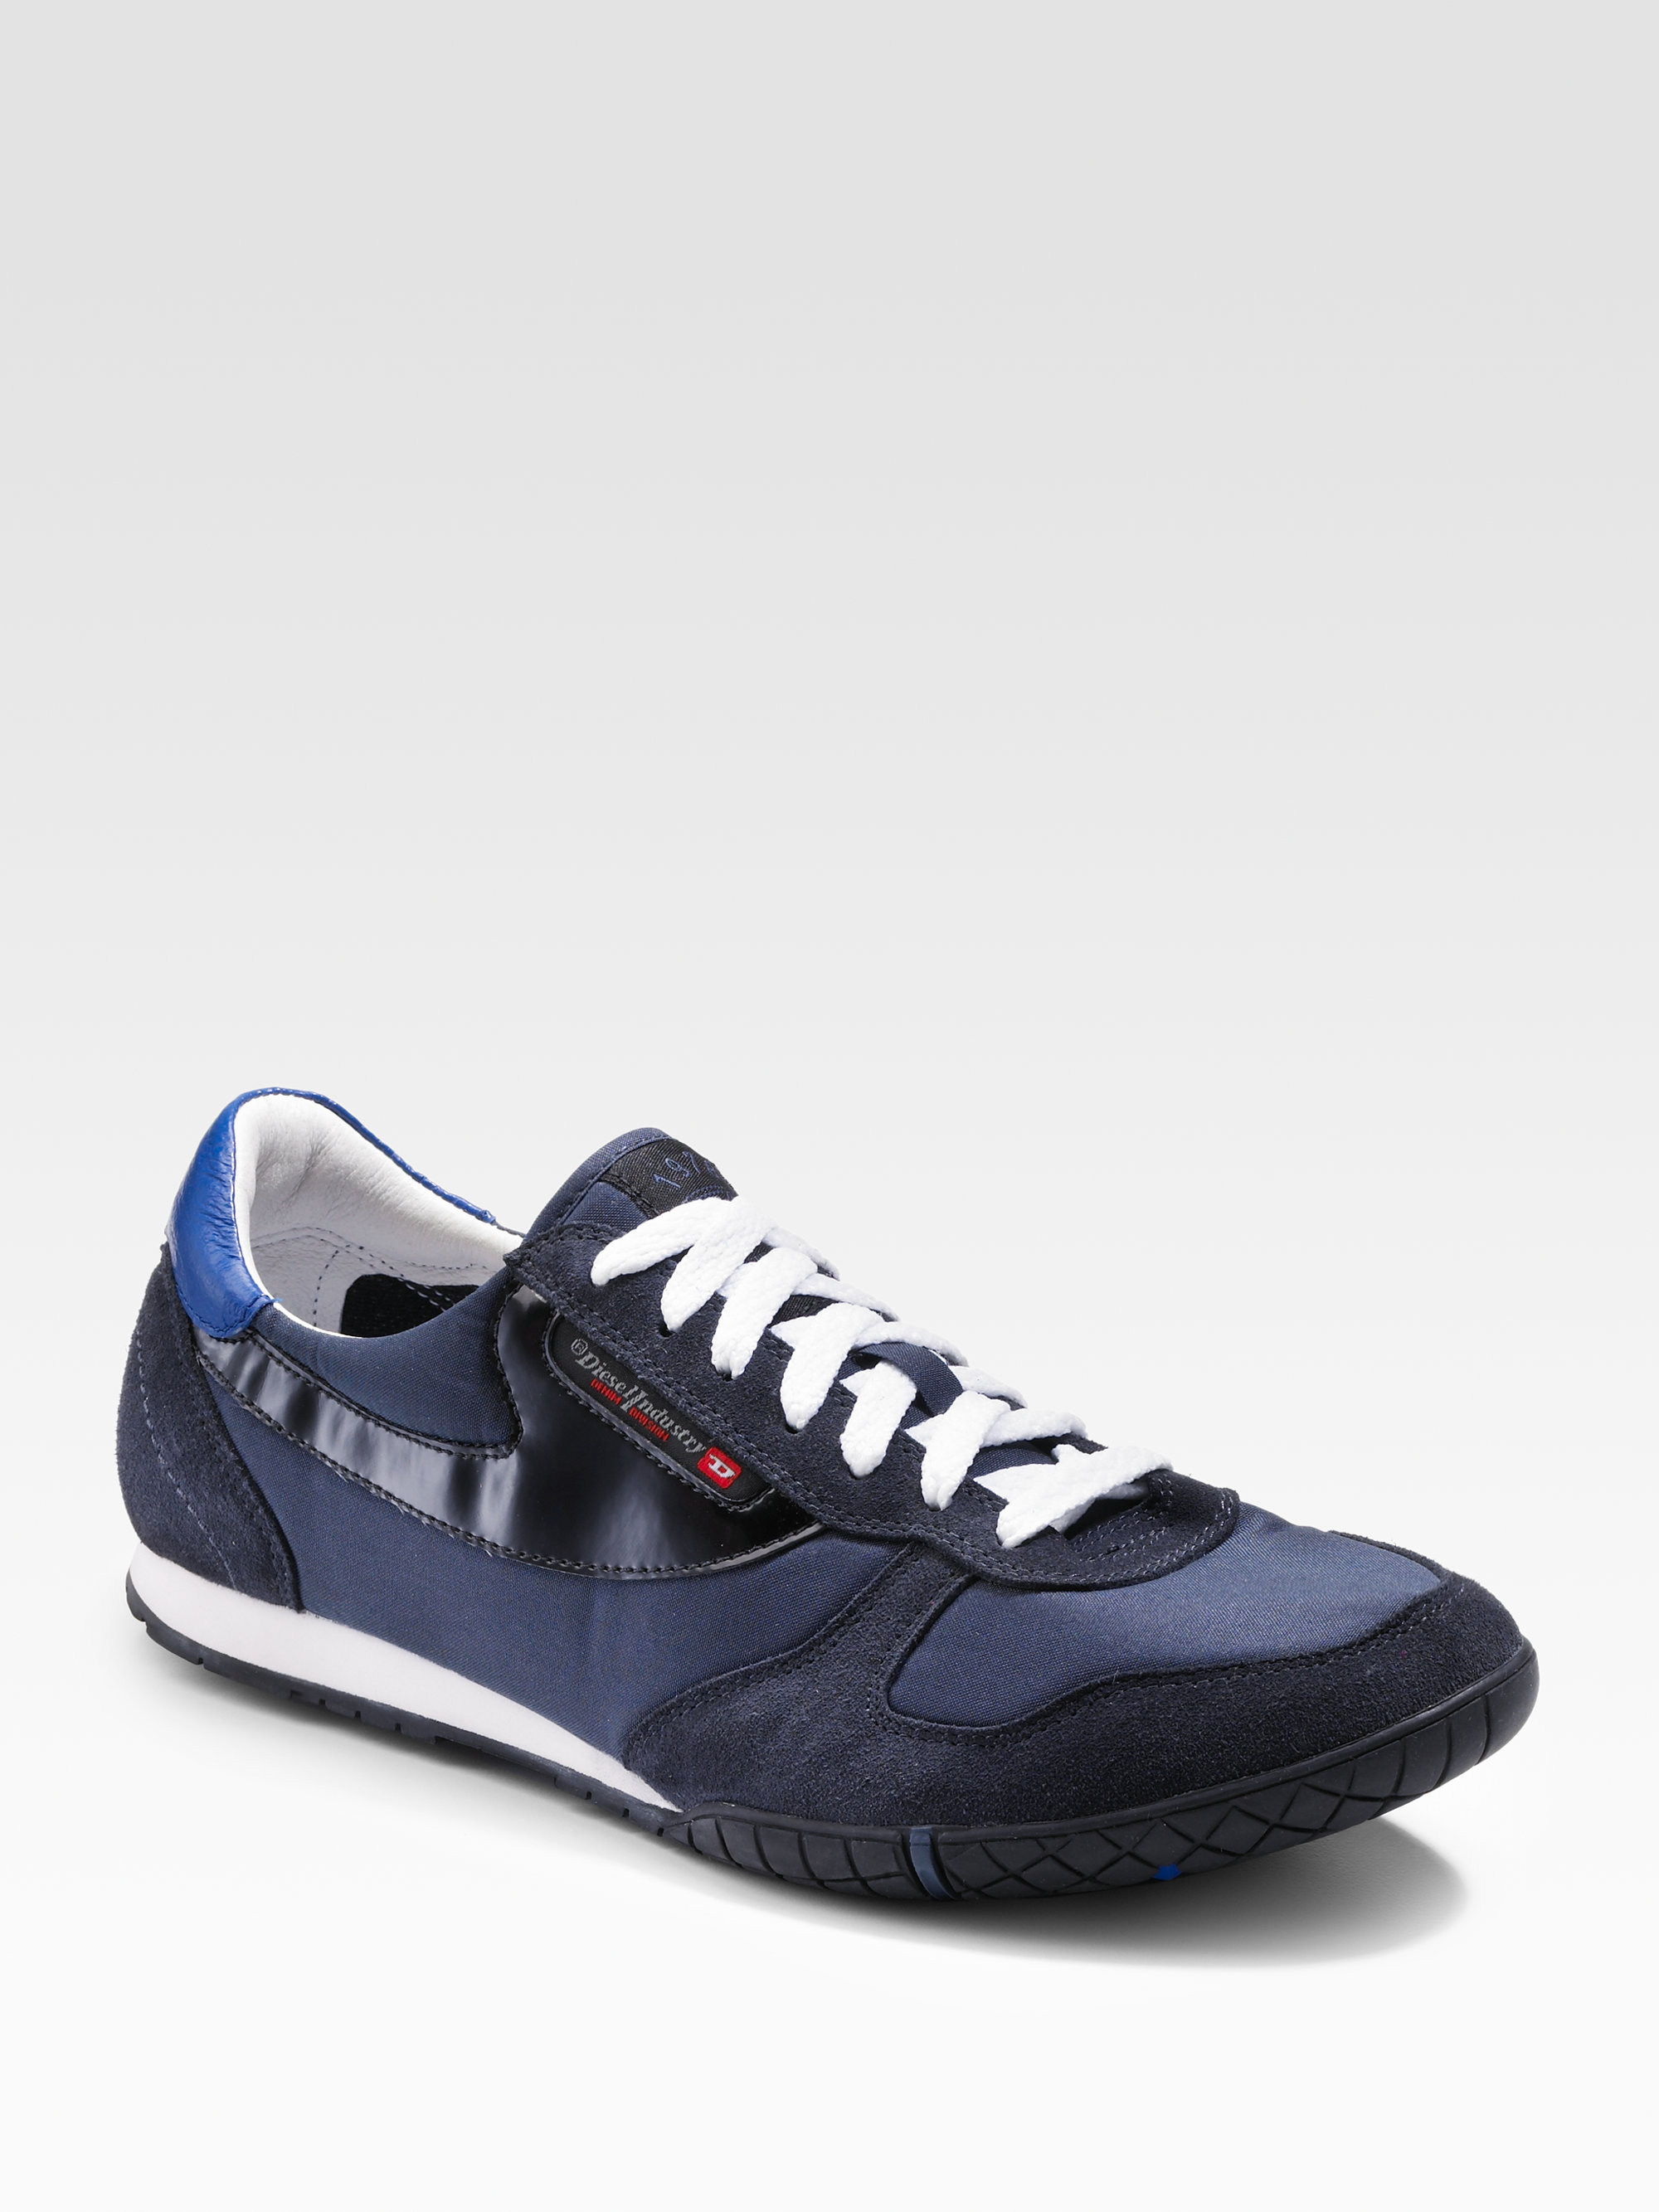 Lyst - Diesel Claw Action Spin Sneakers in Blue for Men